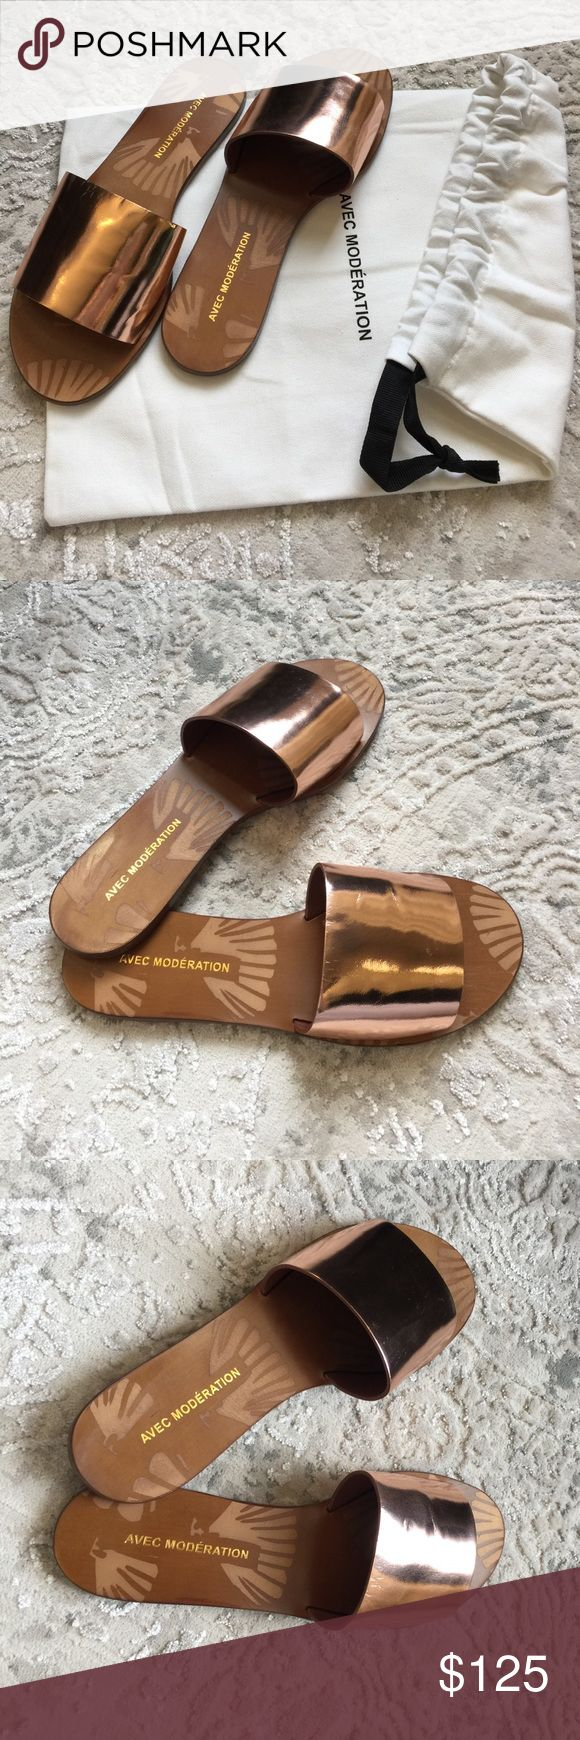 AVEC MODERATION LADIES BRONZE SANDALS SIZE EU 36 AVEC MODERATION ladies bronze, calf leather shell open sandals, size EU 36.   Made in Italy. New with dust bag . Sorry, no box. Avec Moderation Shoes Sandals